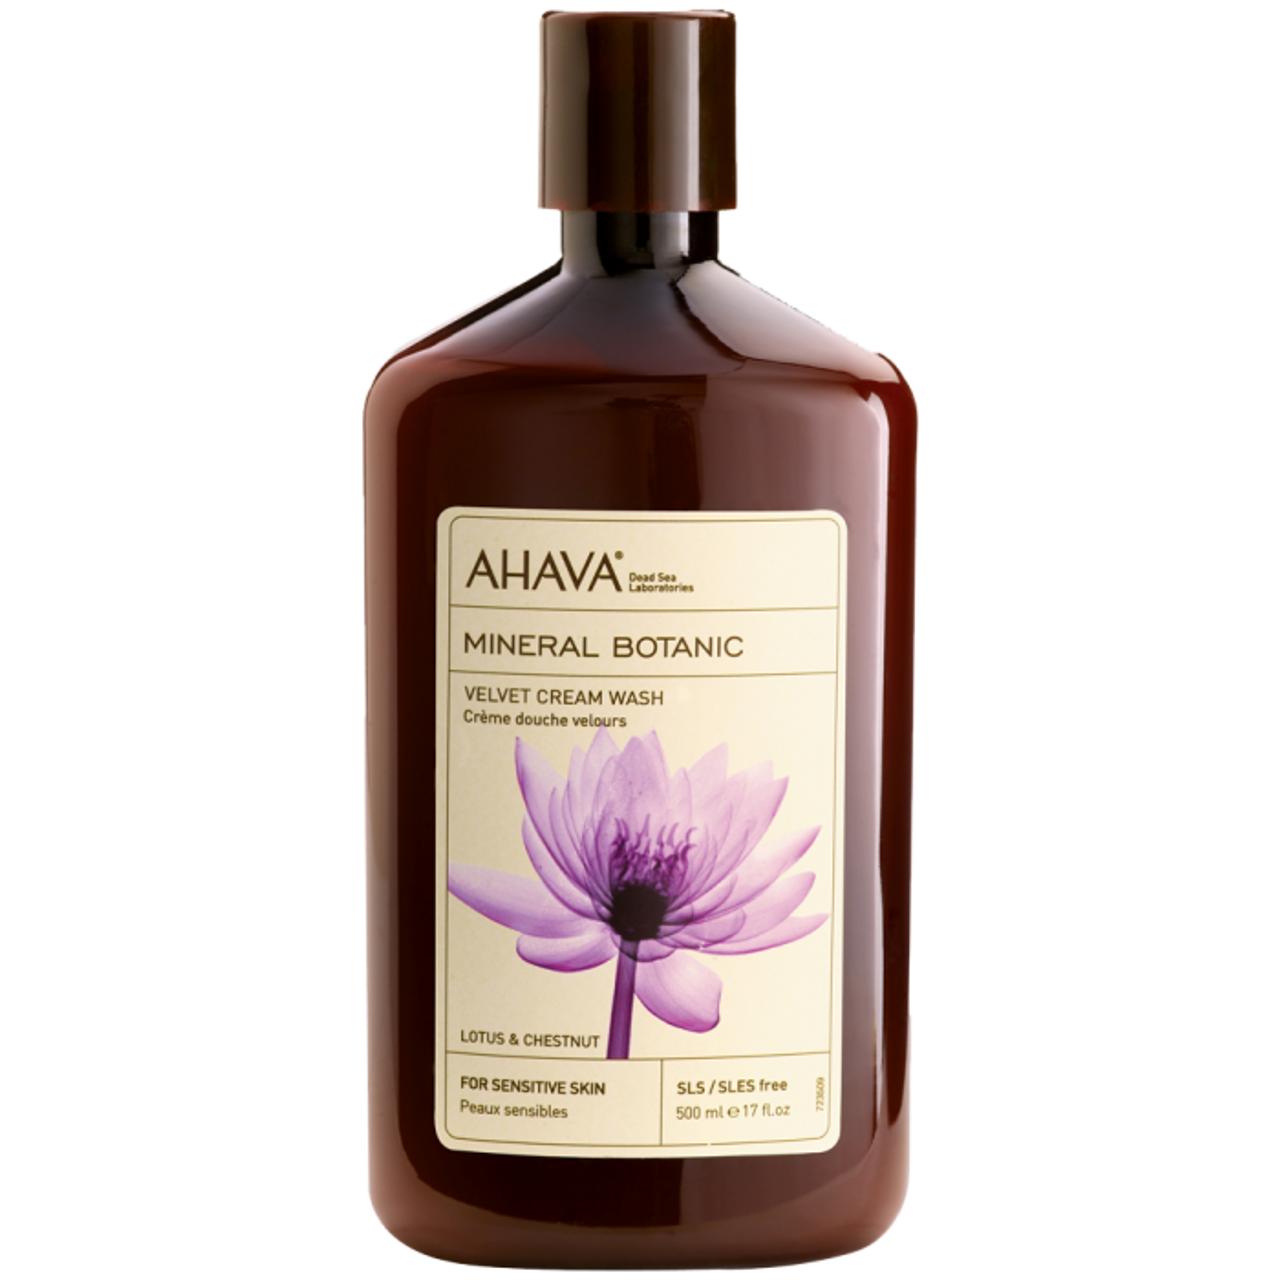 Ahava Velvet Cream Wash Lotus & Chestnut